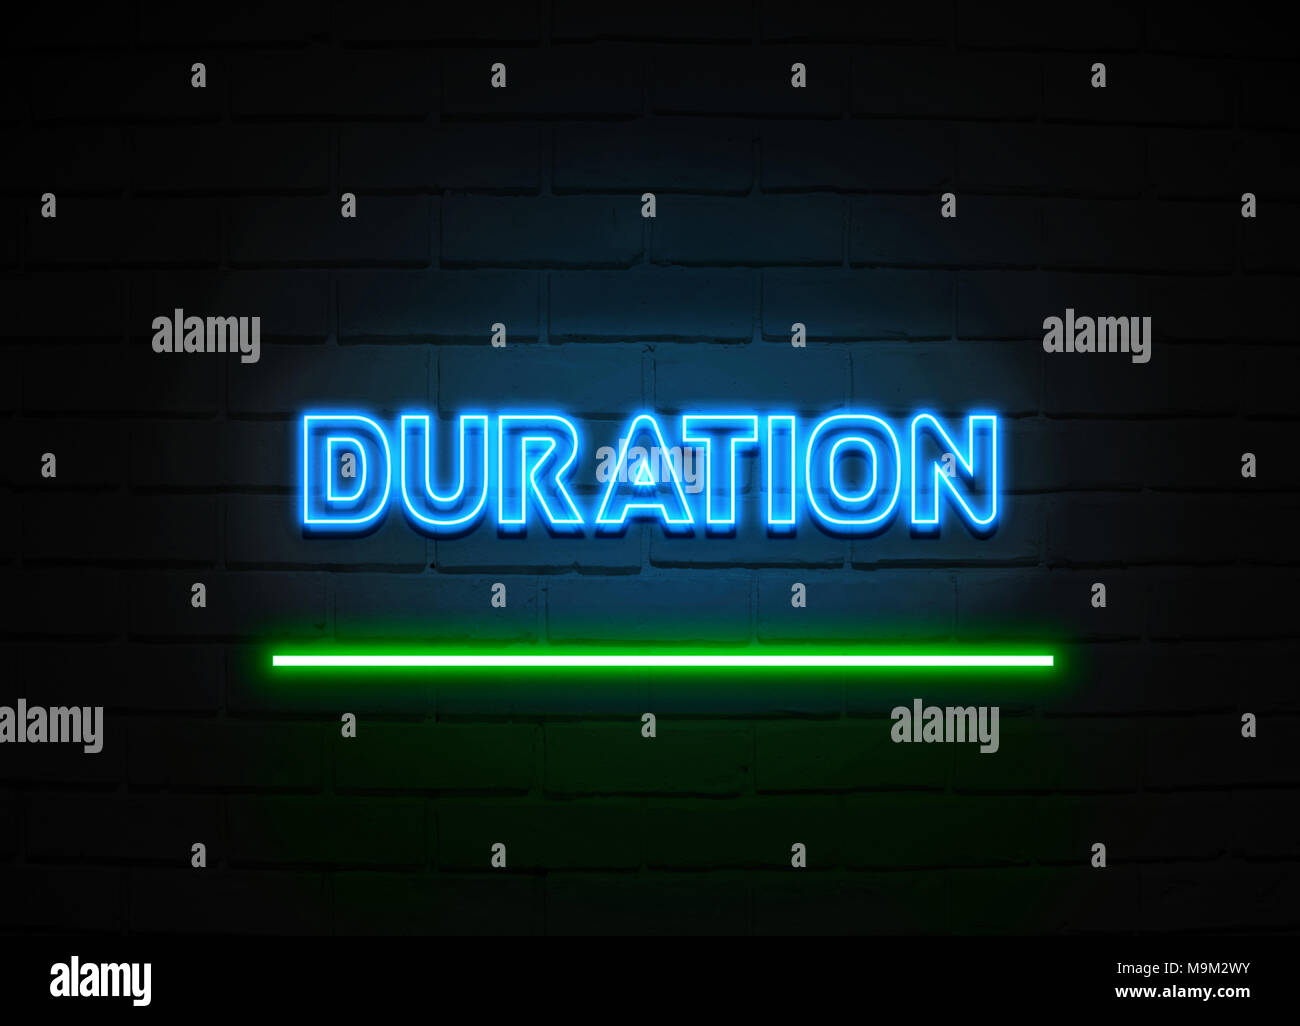 Duration neon sign - Glowing Neon Sign on brickwall wall - 3D rendered royalty free stock illustration. - Stock Image